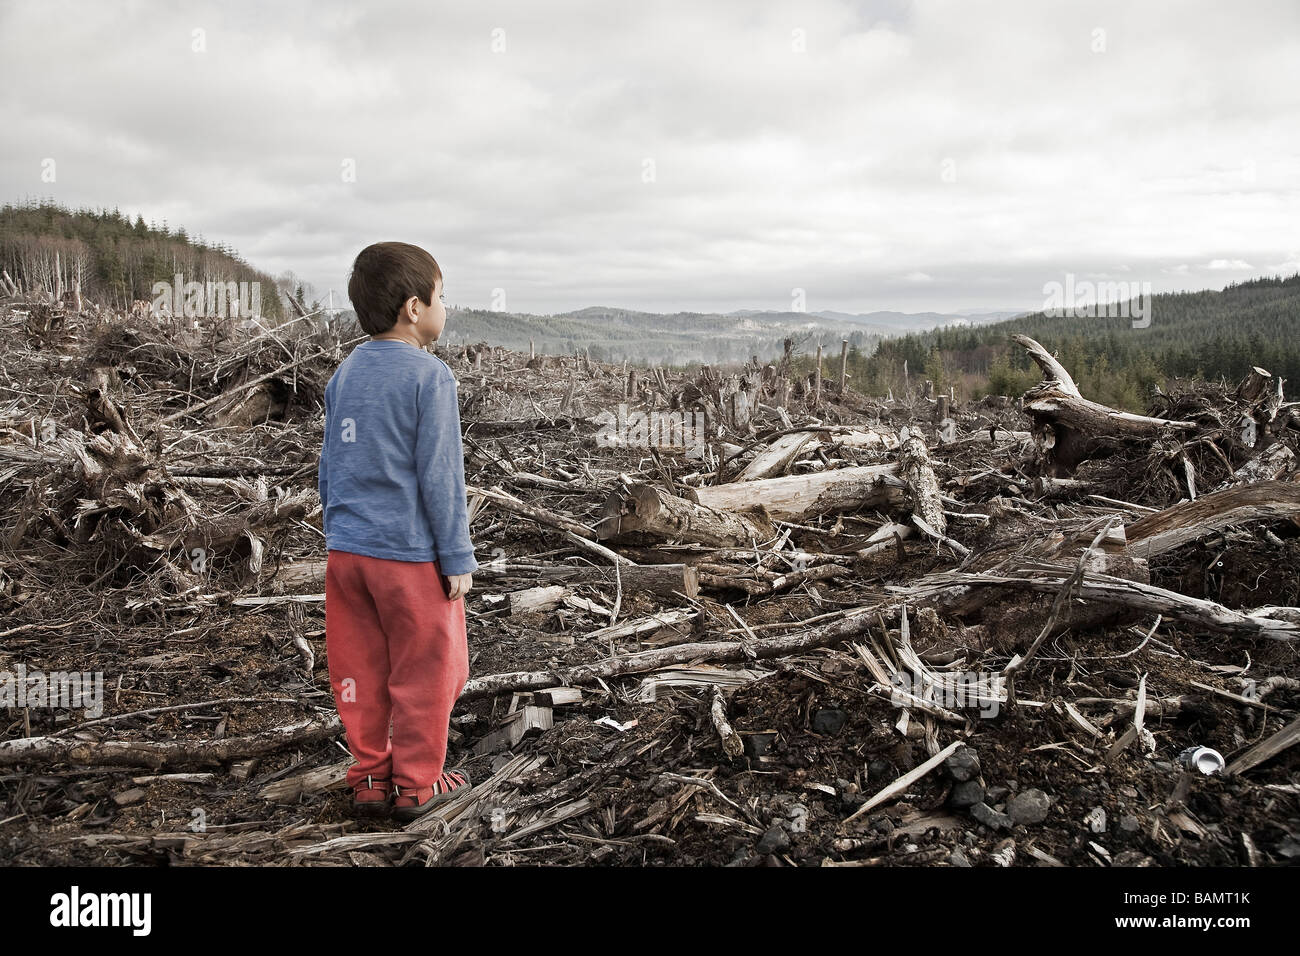 Young boy looking out at cleared landscape of fallen trees - Stock Image